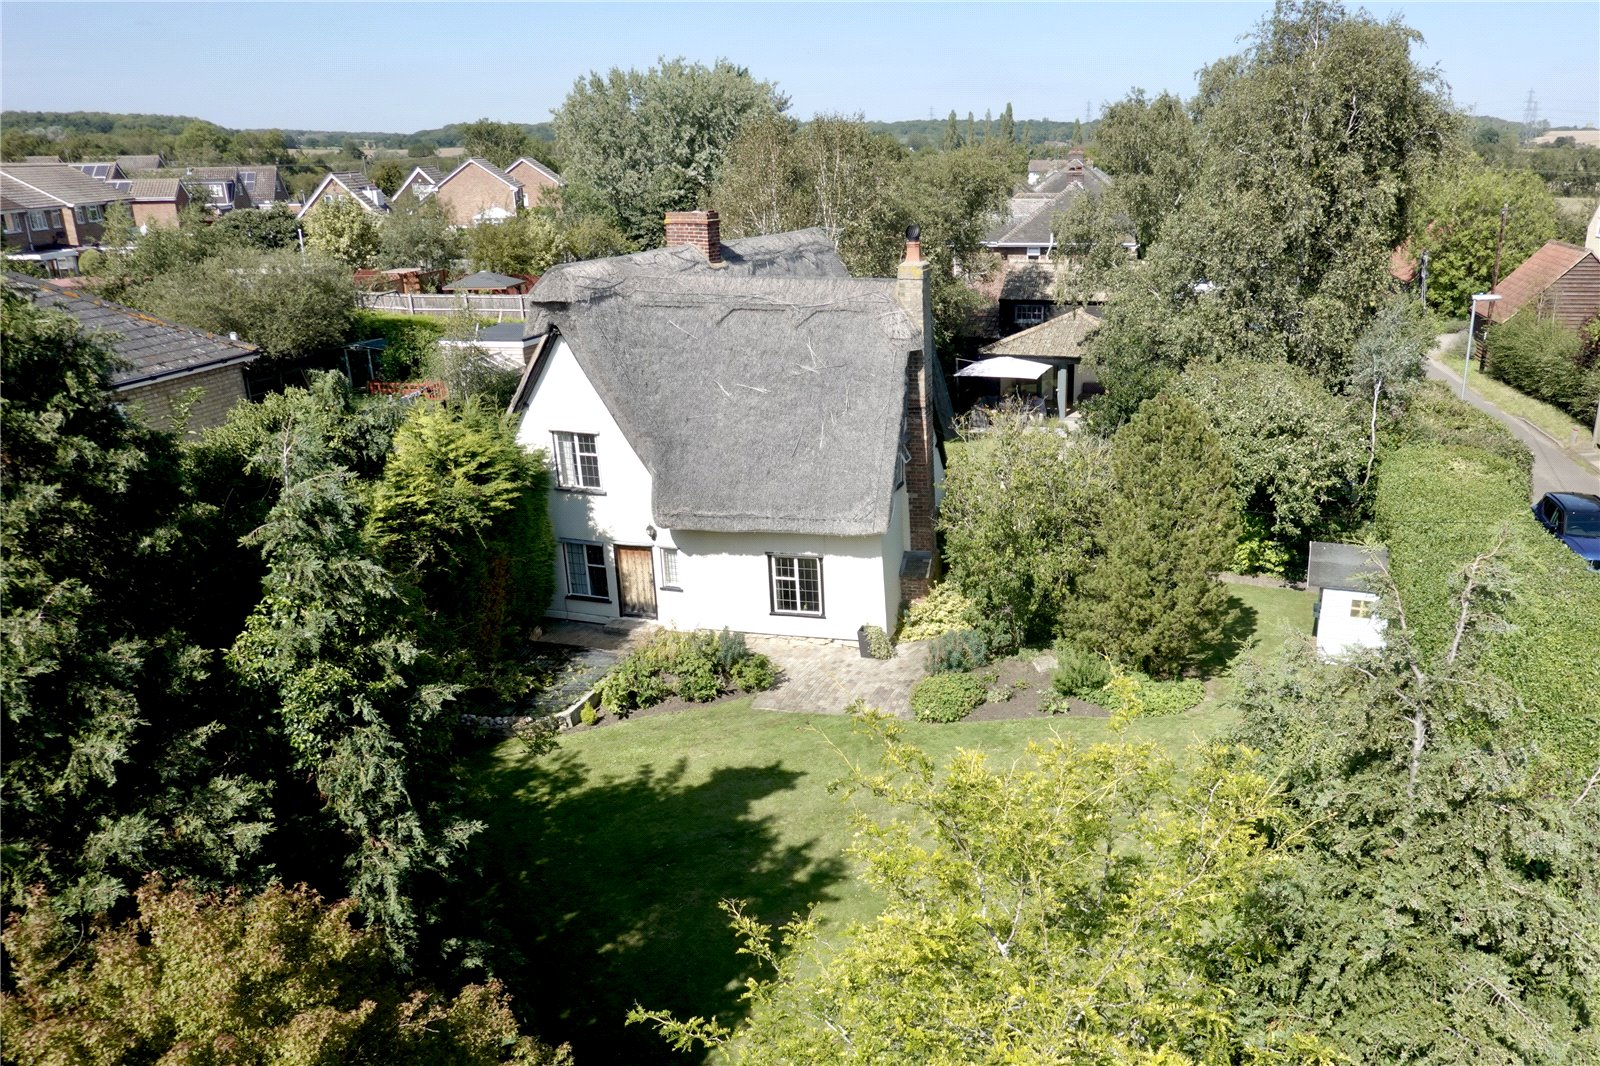 3 bed house for sale in Great Staughton 8